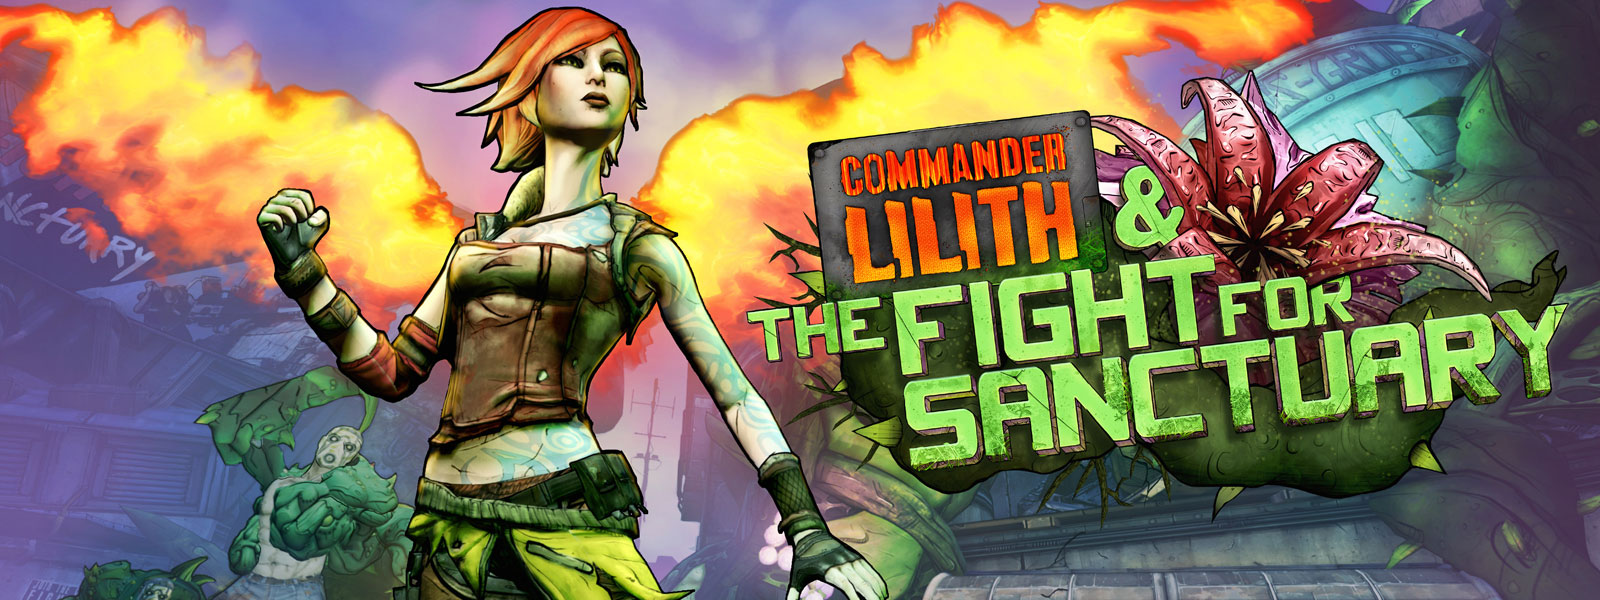 Logo balíka Commander Lilith and the Fight for Sanctuary, Lilith pózuje s ohňom v pozadí a postavou so zelenou príšerou